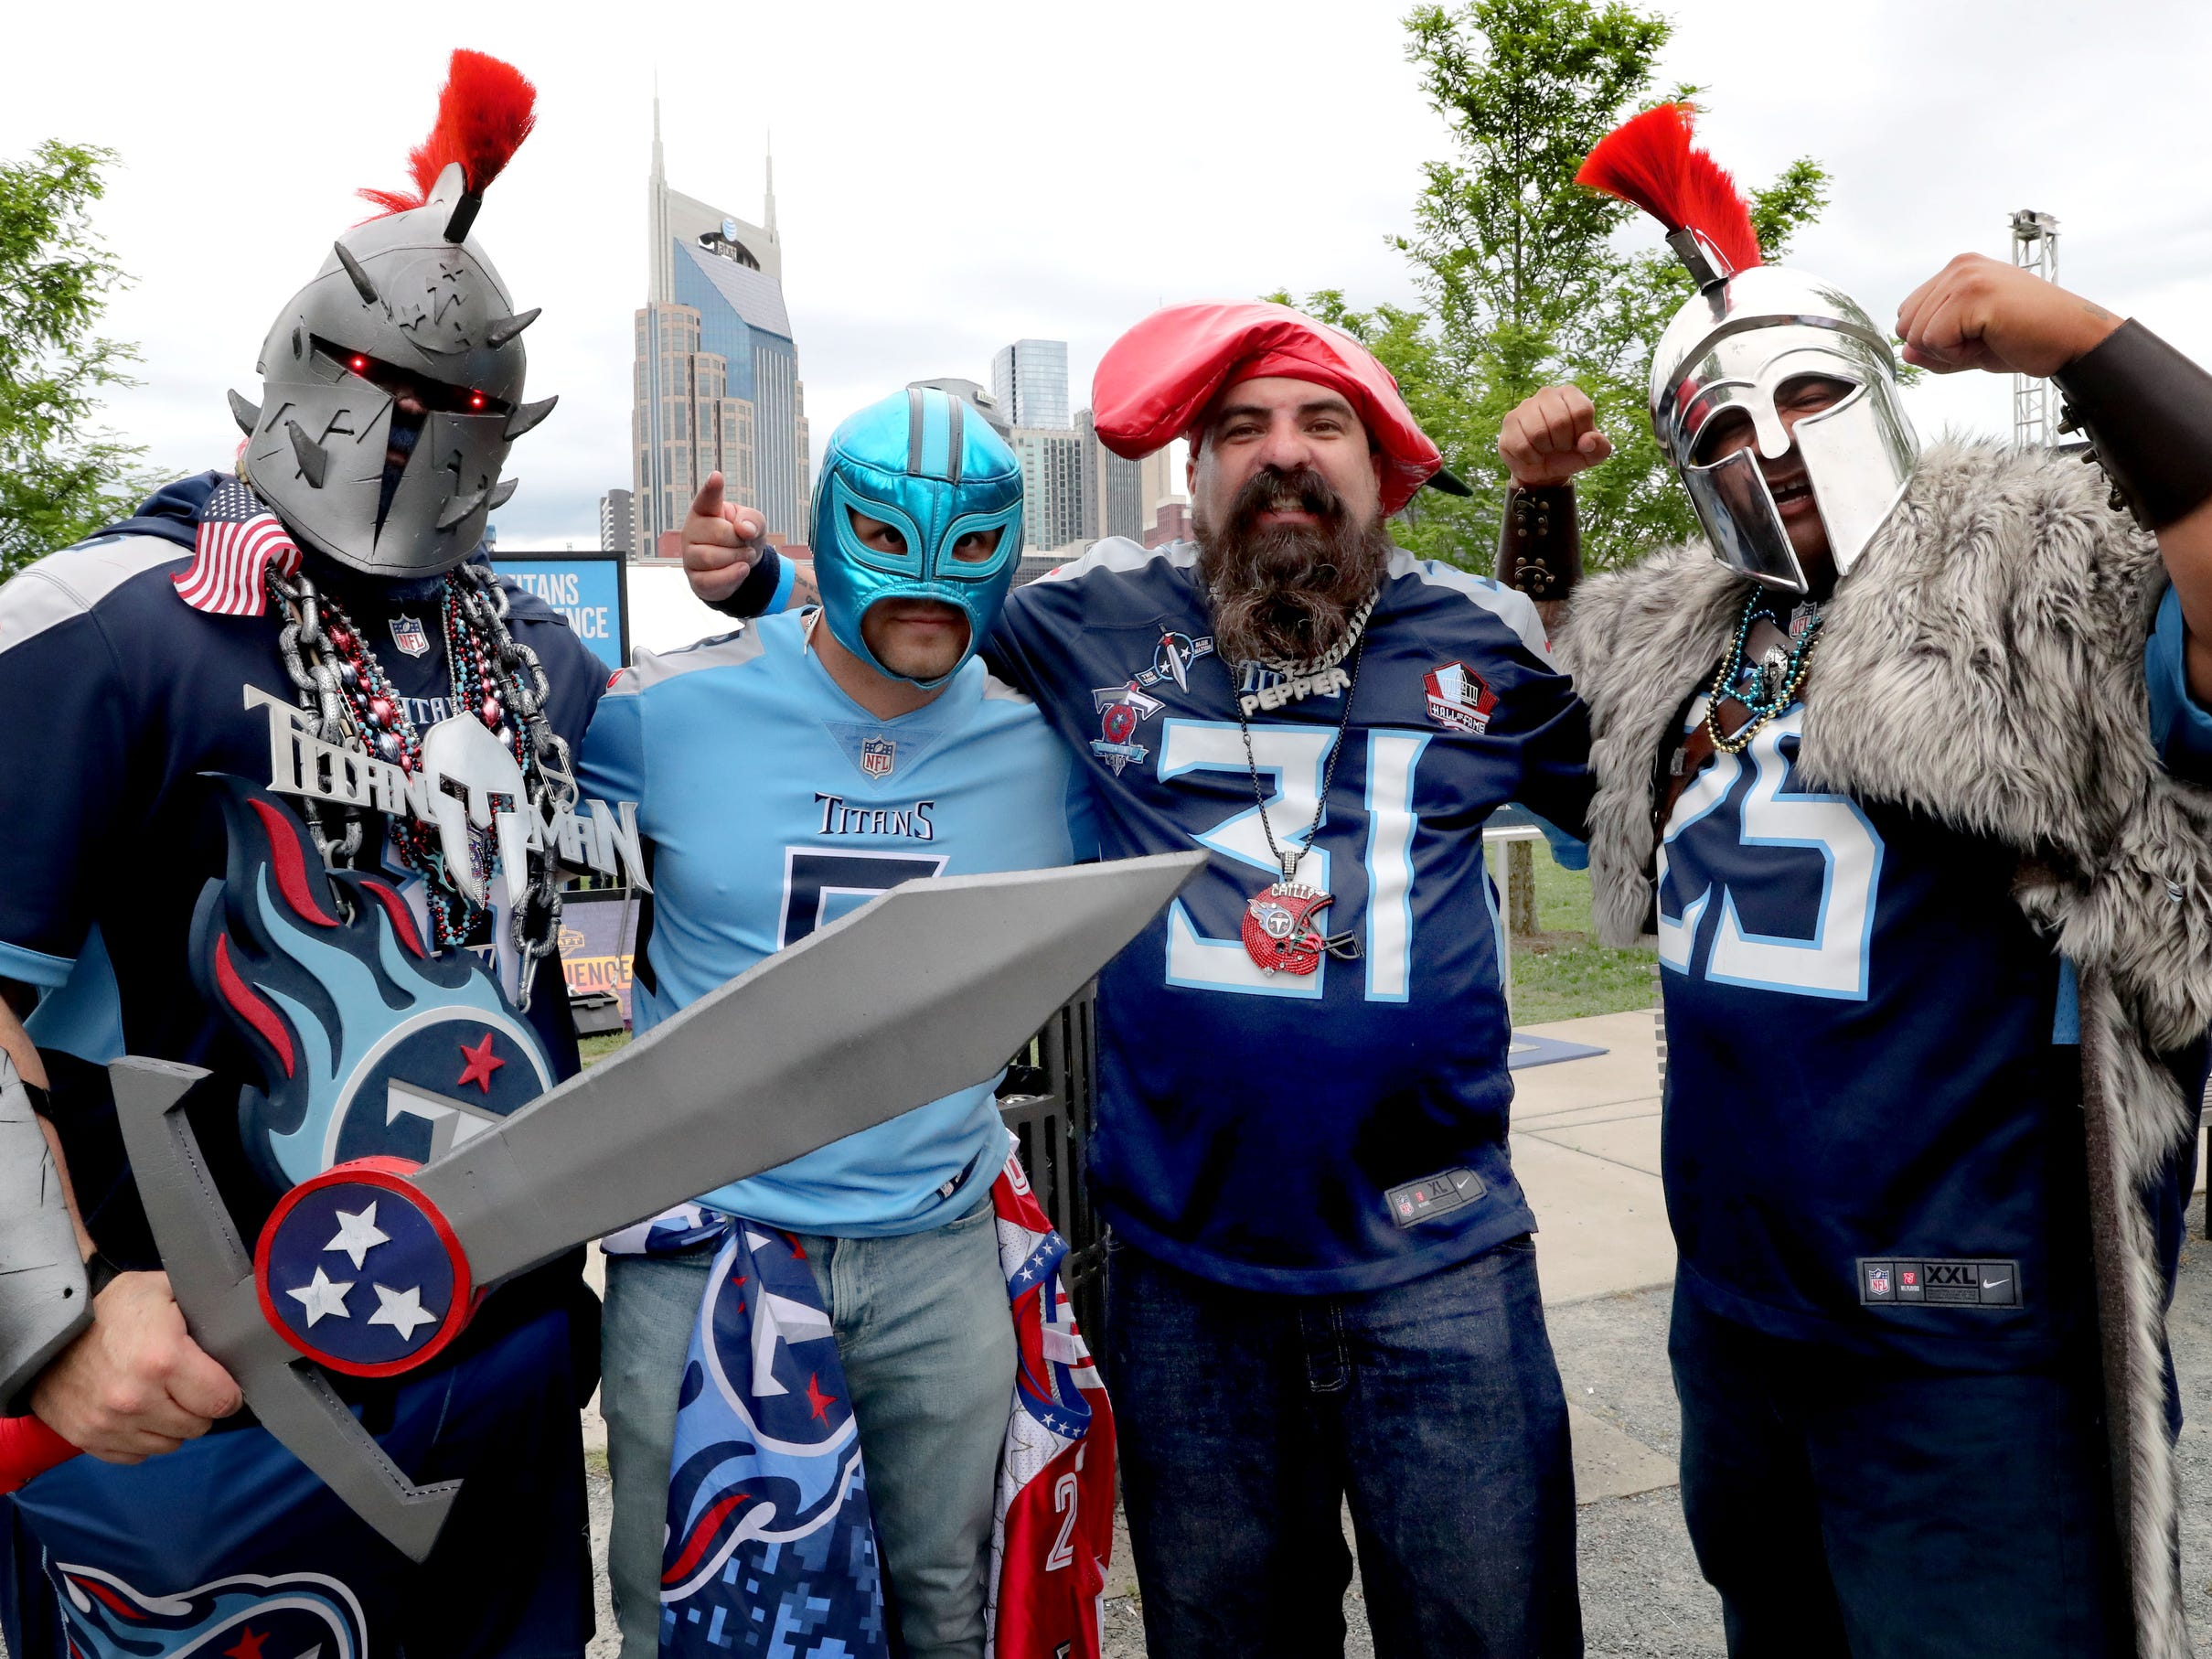 (L toR) Adam McMillan, as Titan Man, Nestor Patino, as Titan Misterio, Fernando Espejo as Chilly Pepper, and Onne Villarreal as Mr. A'oo strike a pose next to the Nashville Skyline, at the NFL Draft Experience, at Nissan Stadium on Thursday, April 25, 2019, in Nashville, Tennessee.